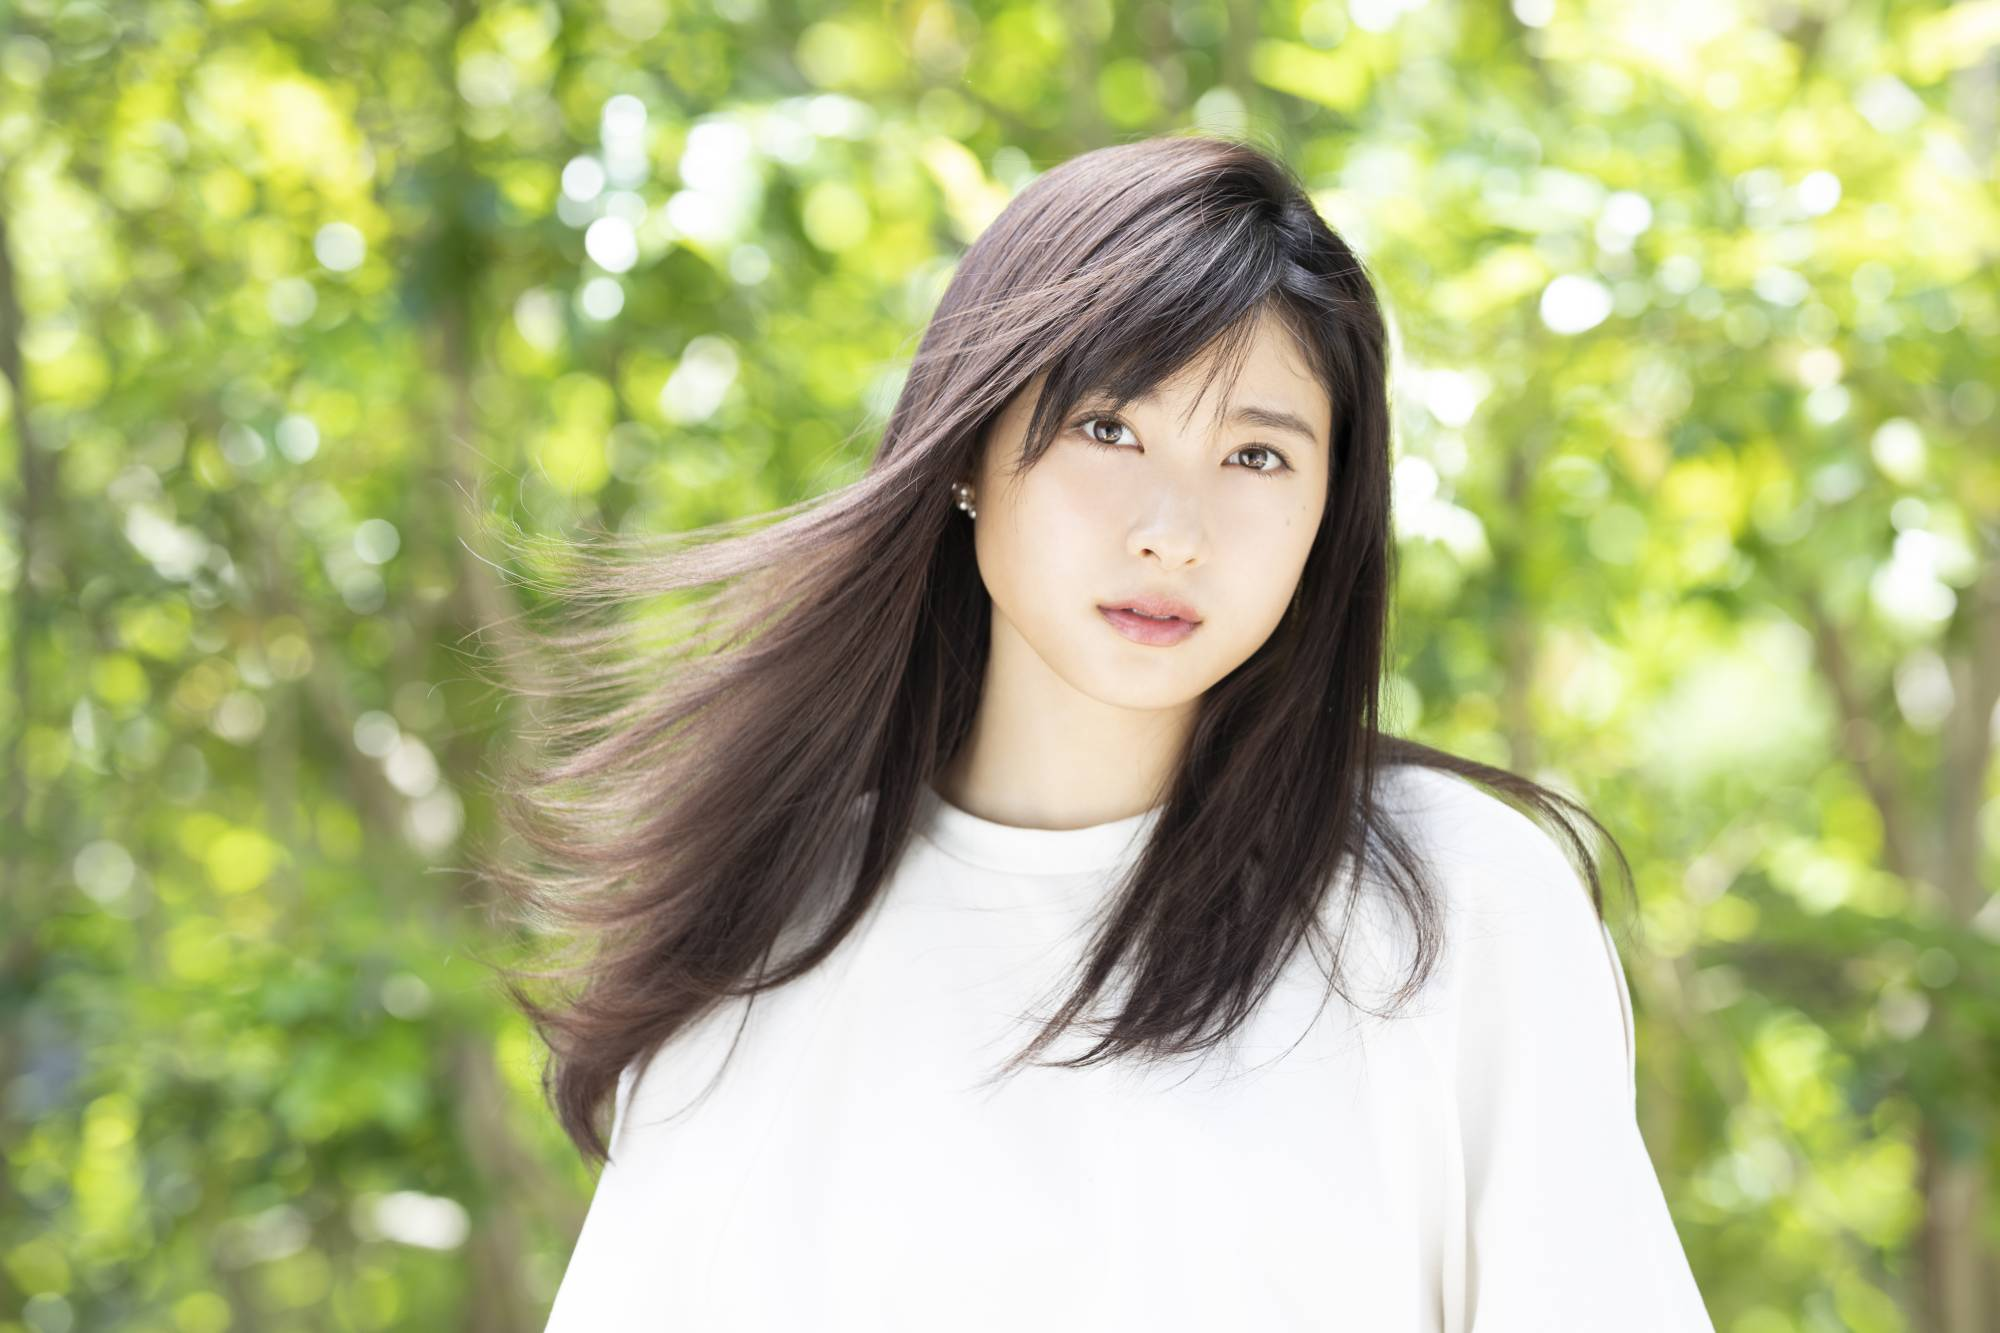 Versatile performer: Tao Tsuchiya, who is set to appear as an intrepid ninja in the final installments of the 'Rurouni Kenshin' film series, also made a name for herself dancing in a music video for Japan's release of Sia's hit track 'Alive.' |